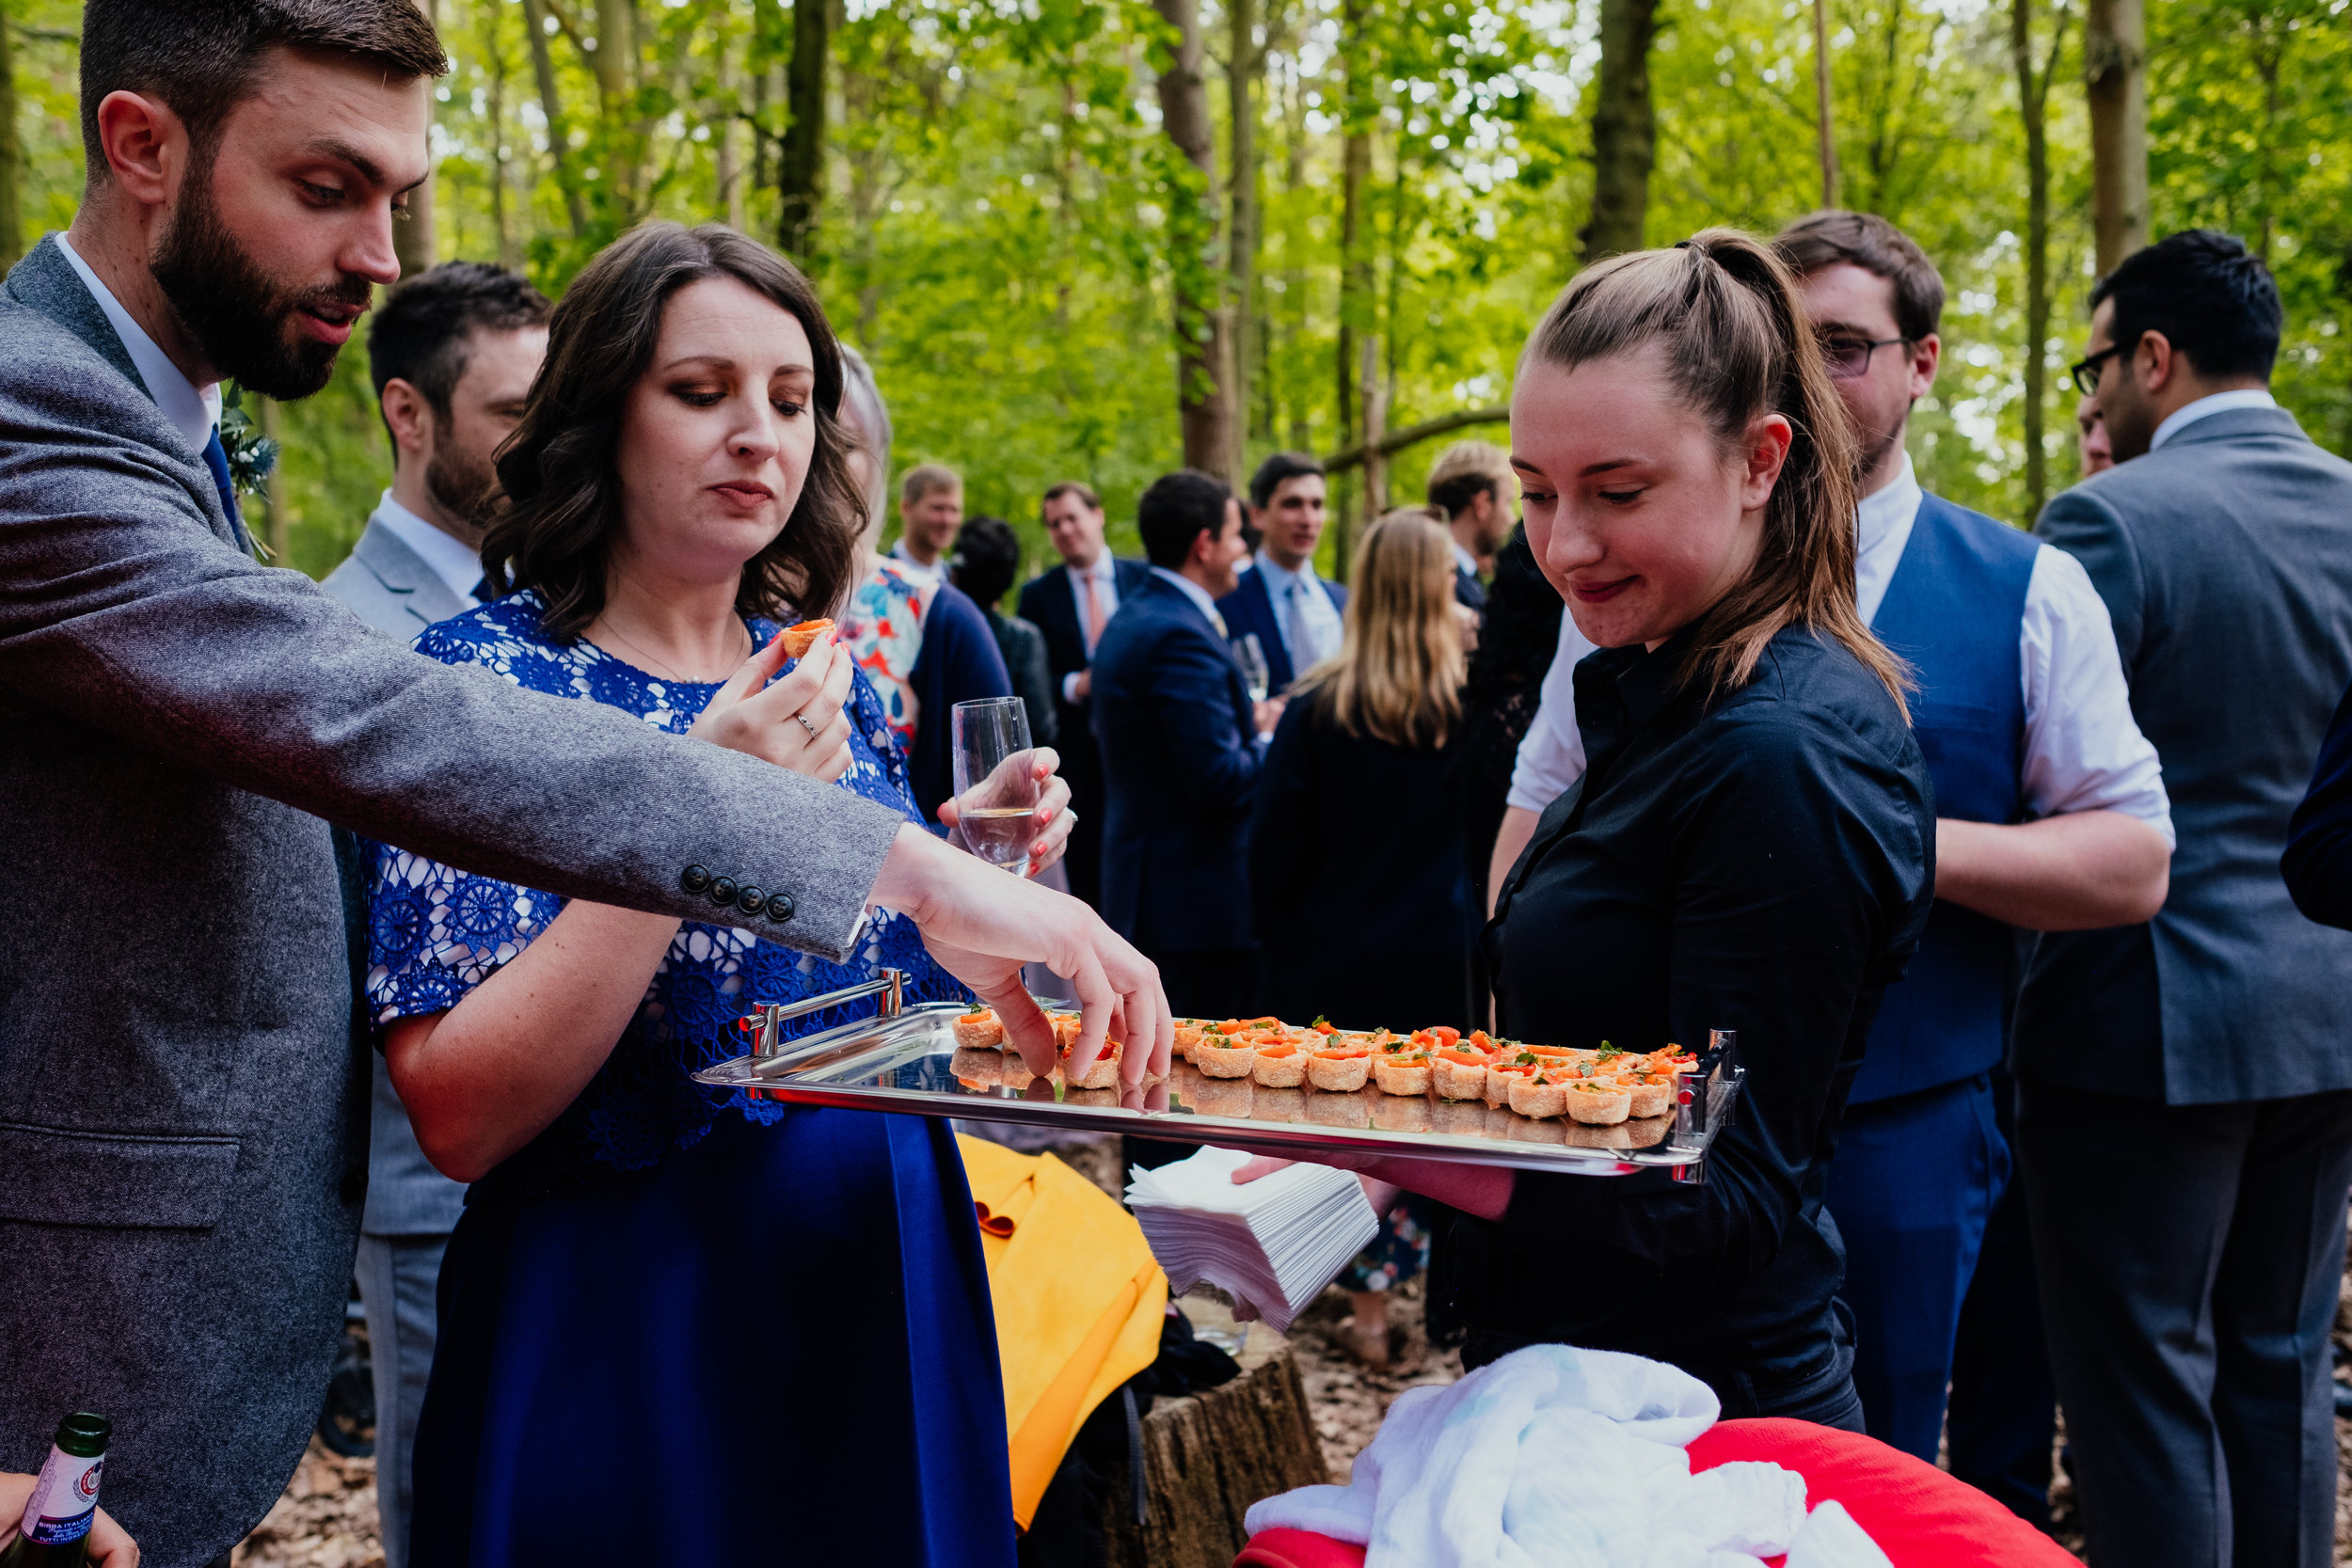 Wedding guests eat canapés during outdoor drinks reception at Captains Wood Barn wedding